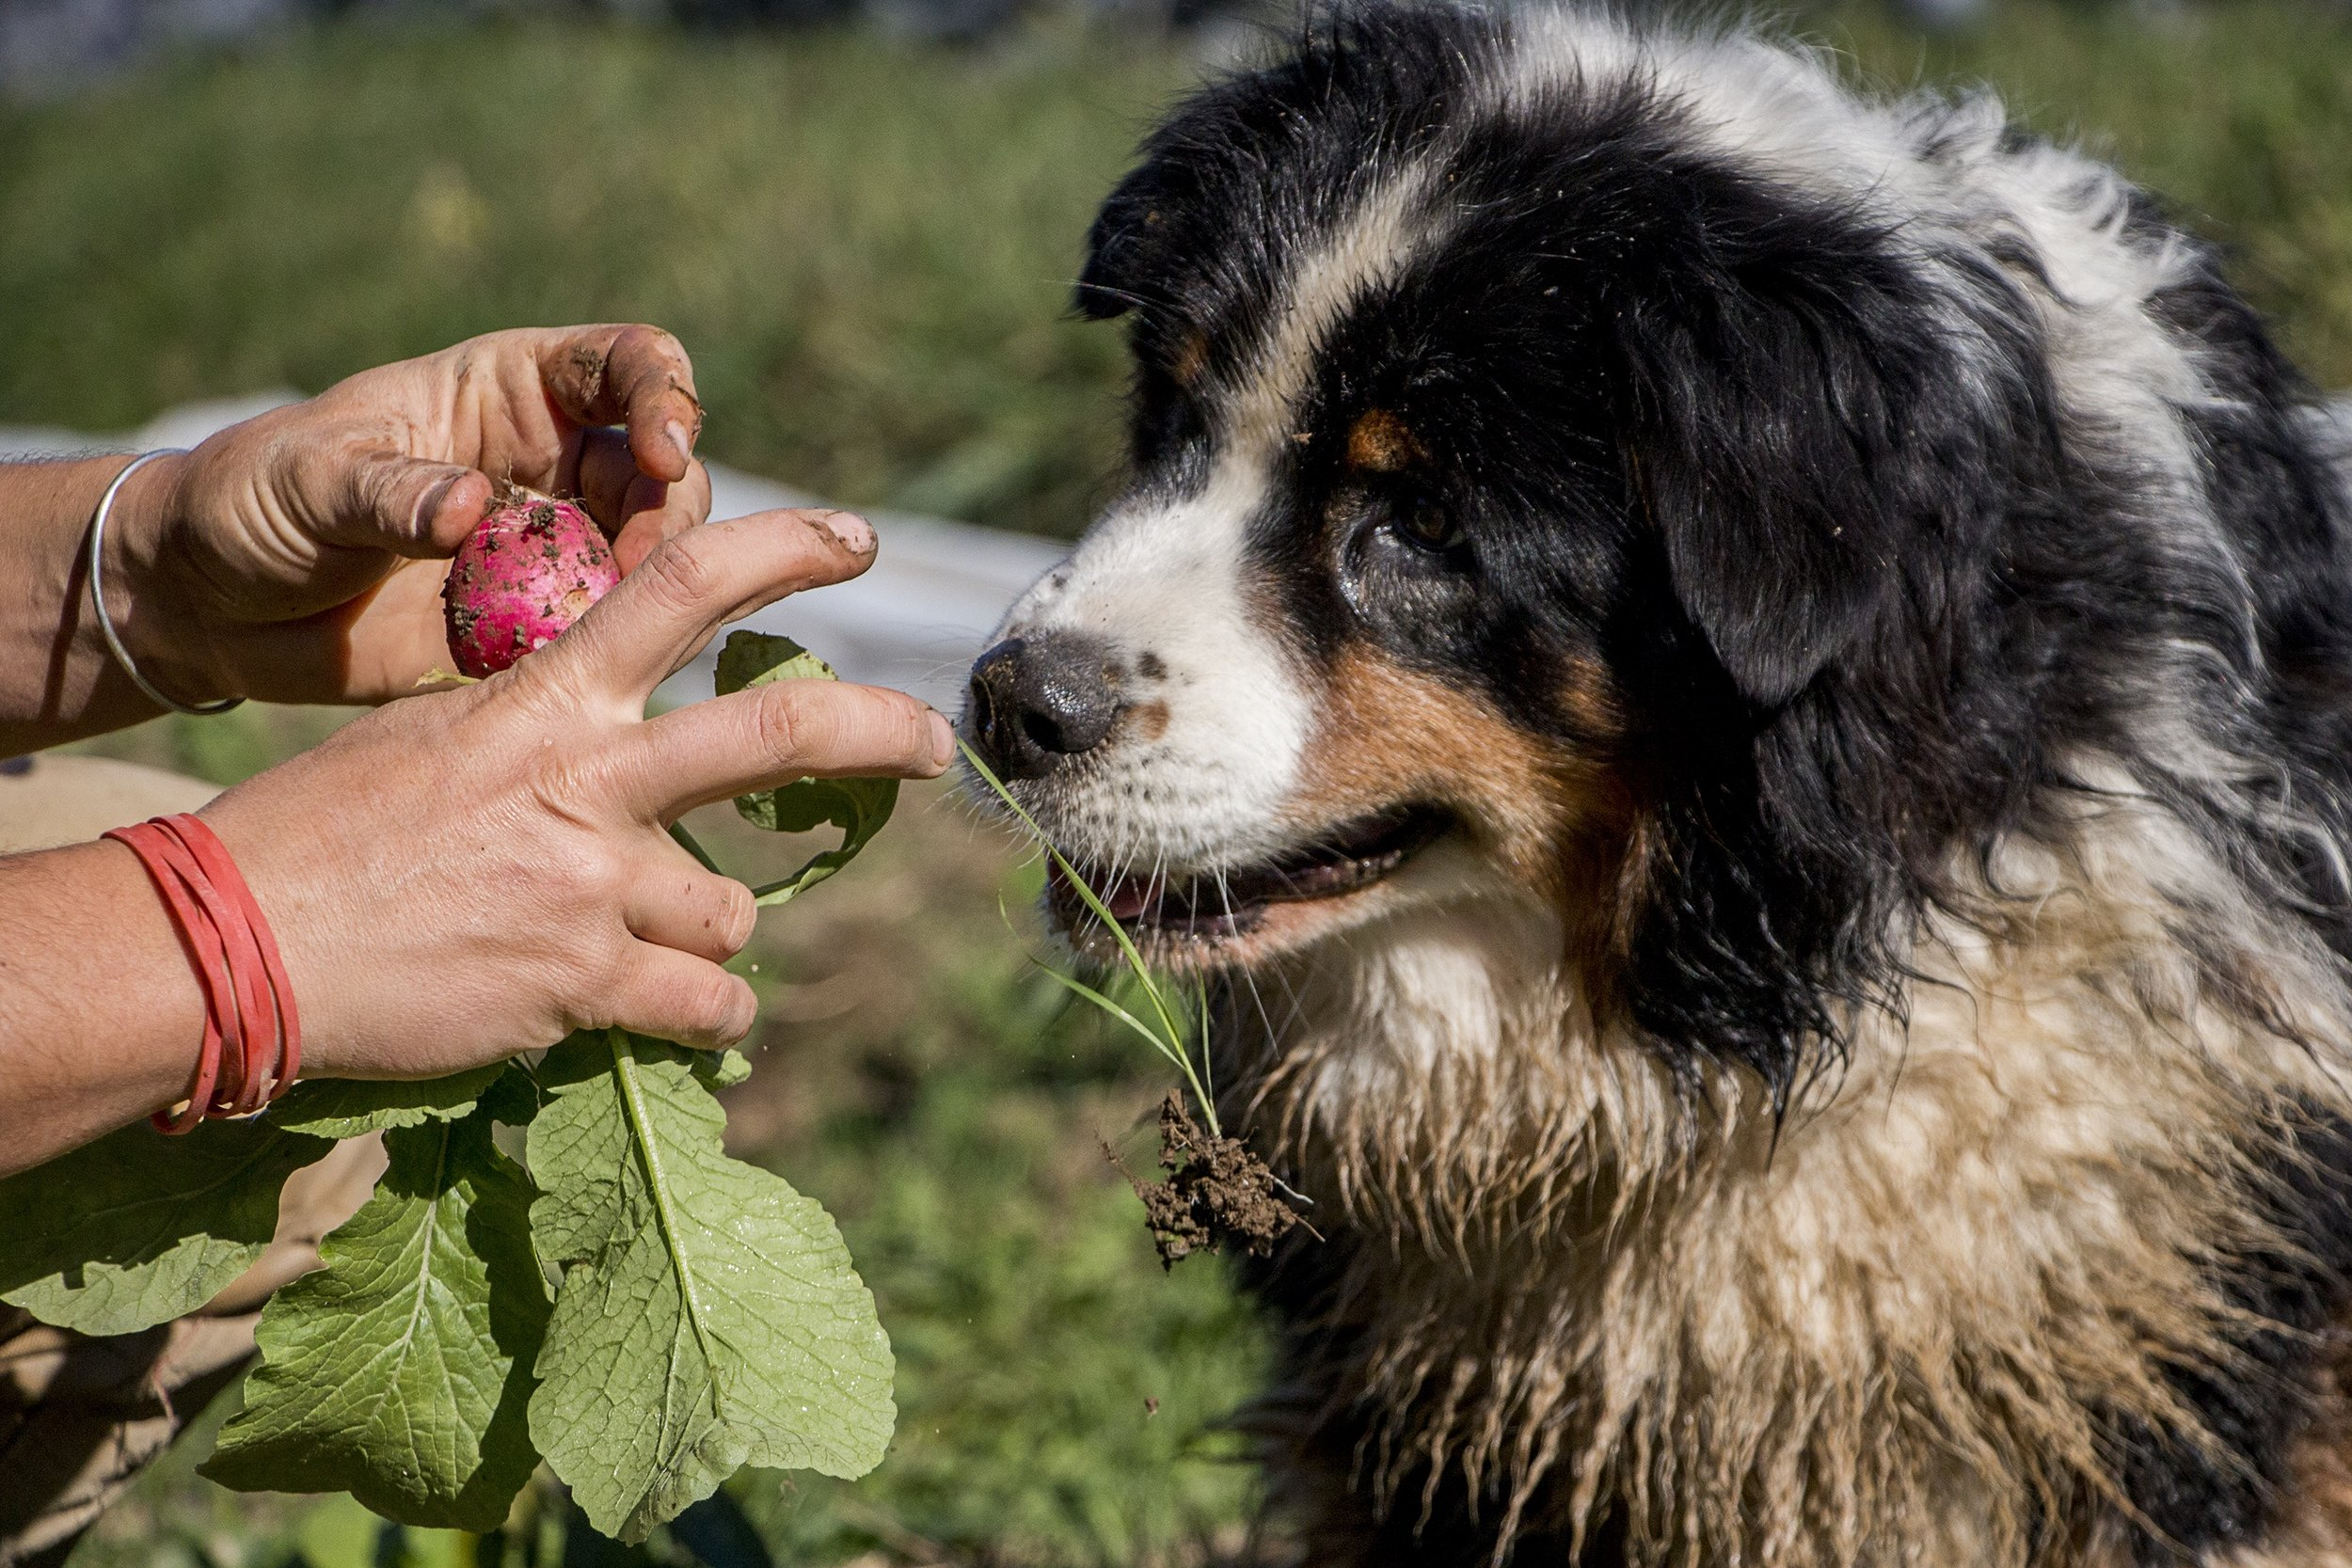 Cusolito and Munzer's border collie, Lena, eyes a recently picked radish for a snack.